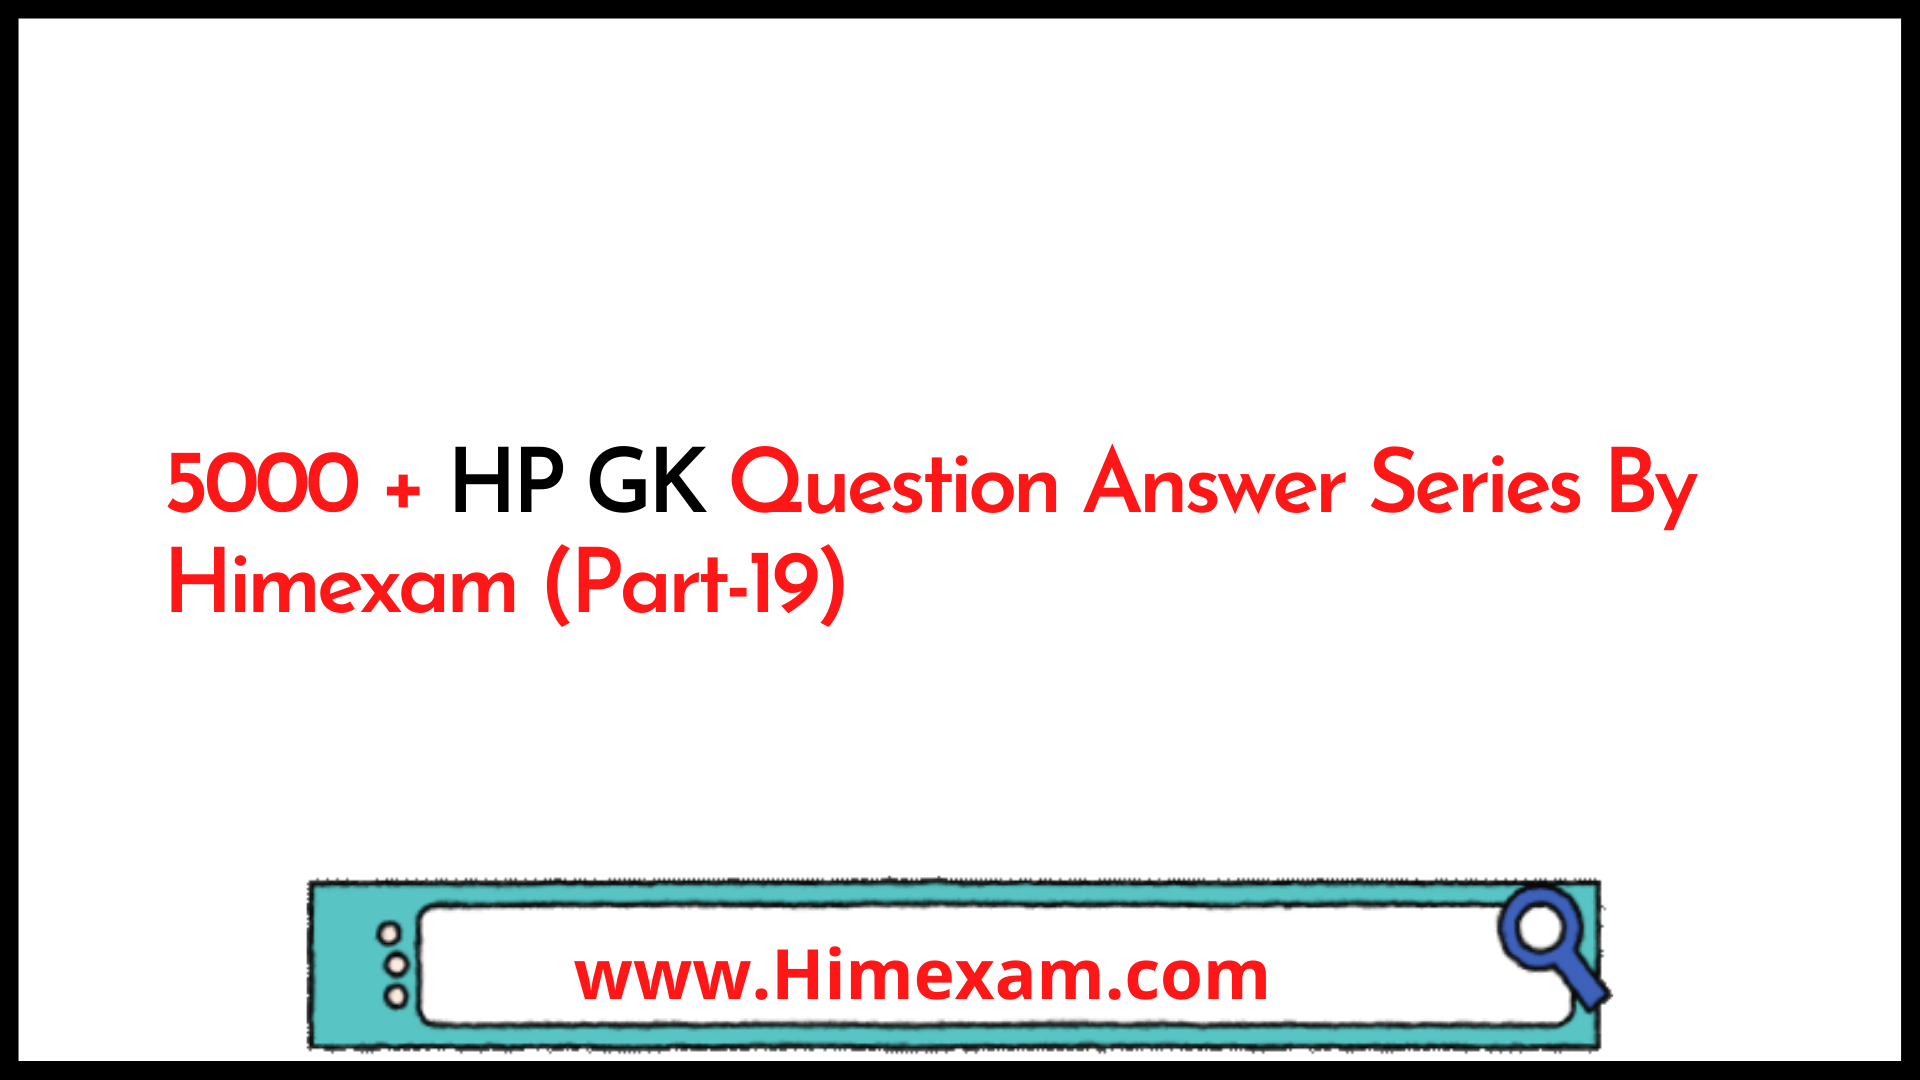 5000 + HP GK Question Answer Series By Himexam (Part-19)